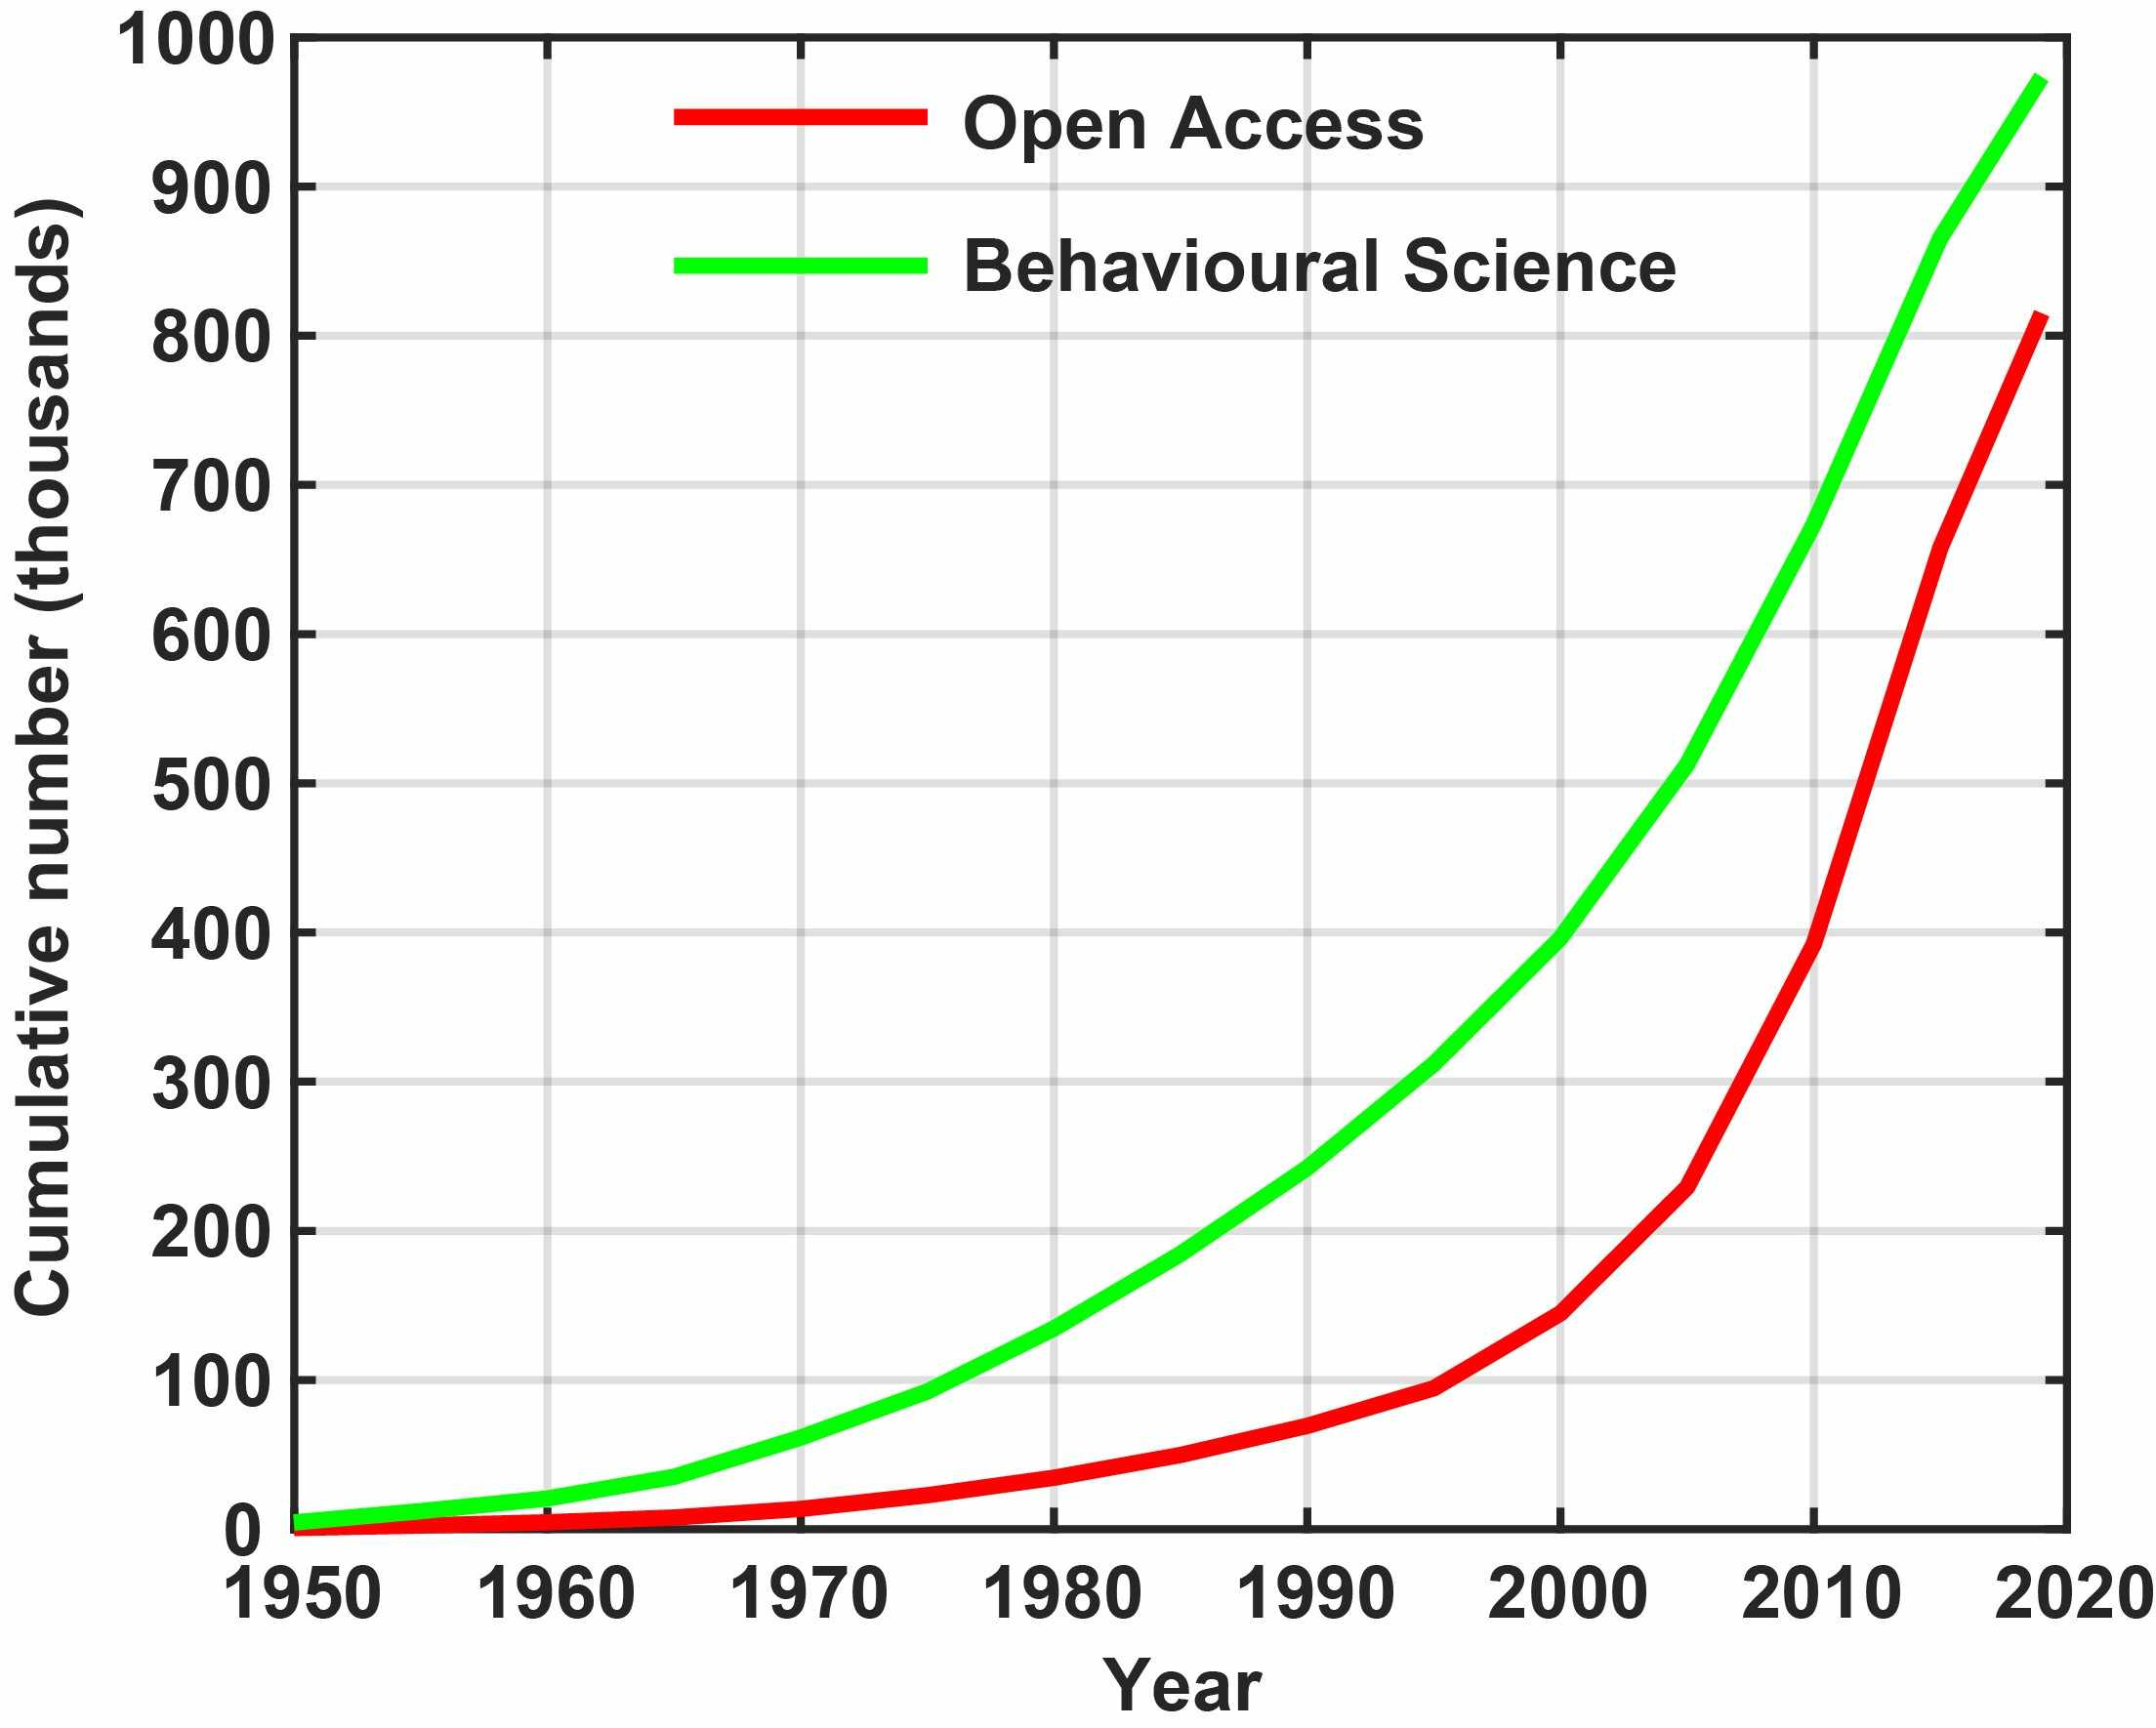 Publications trend in Behavioural Science and Open Access Publications